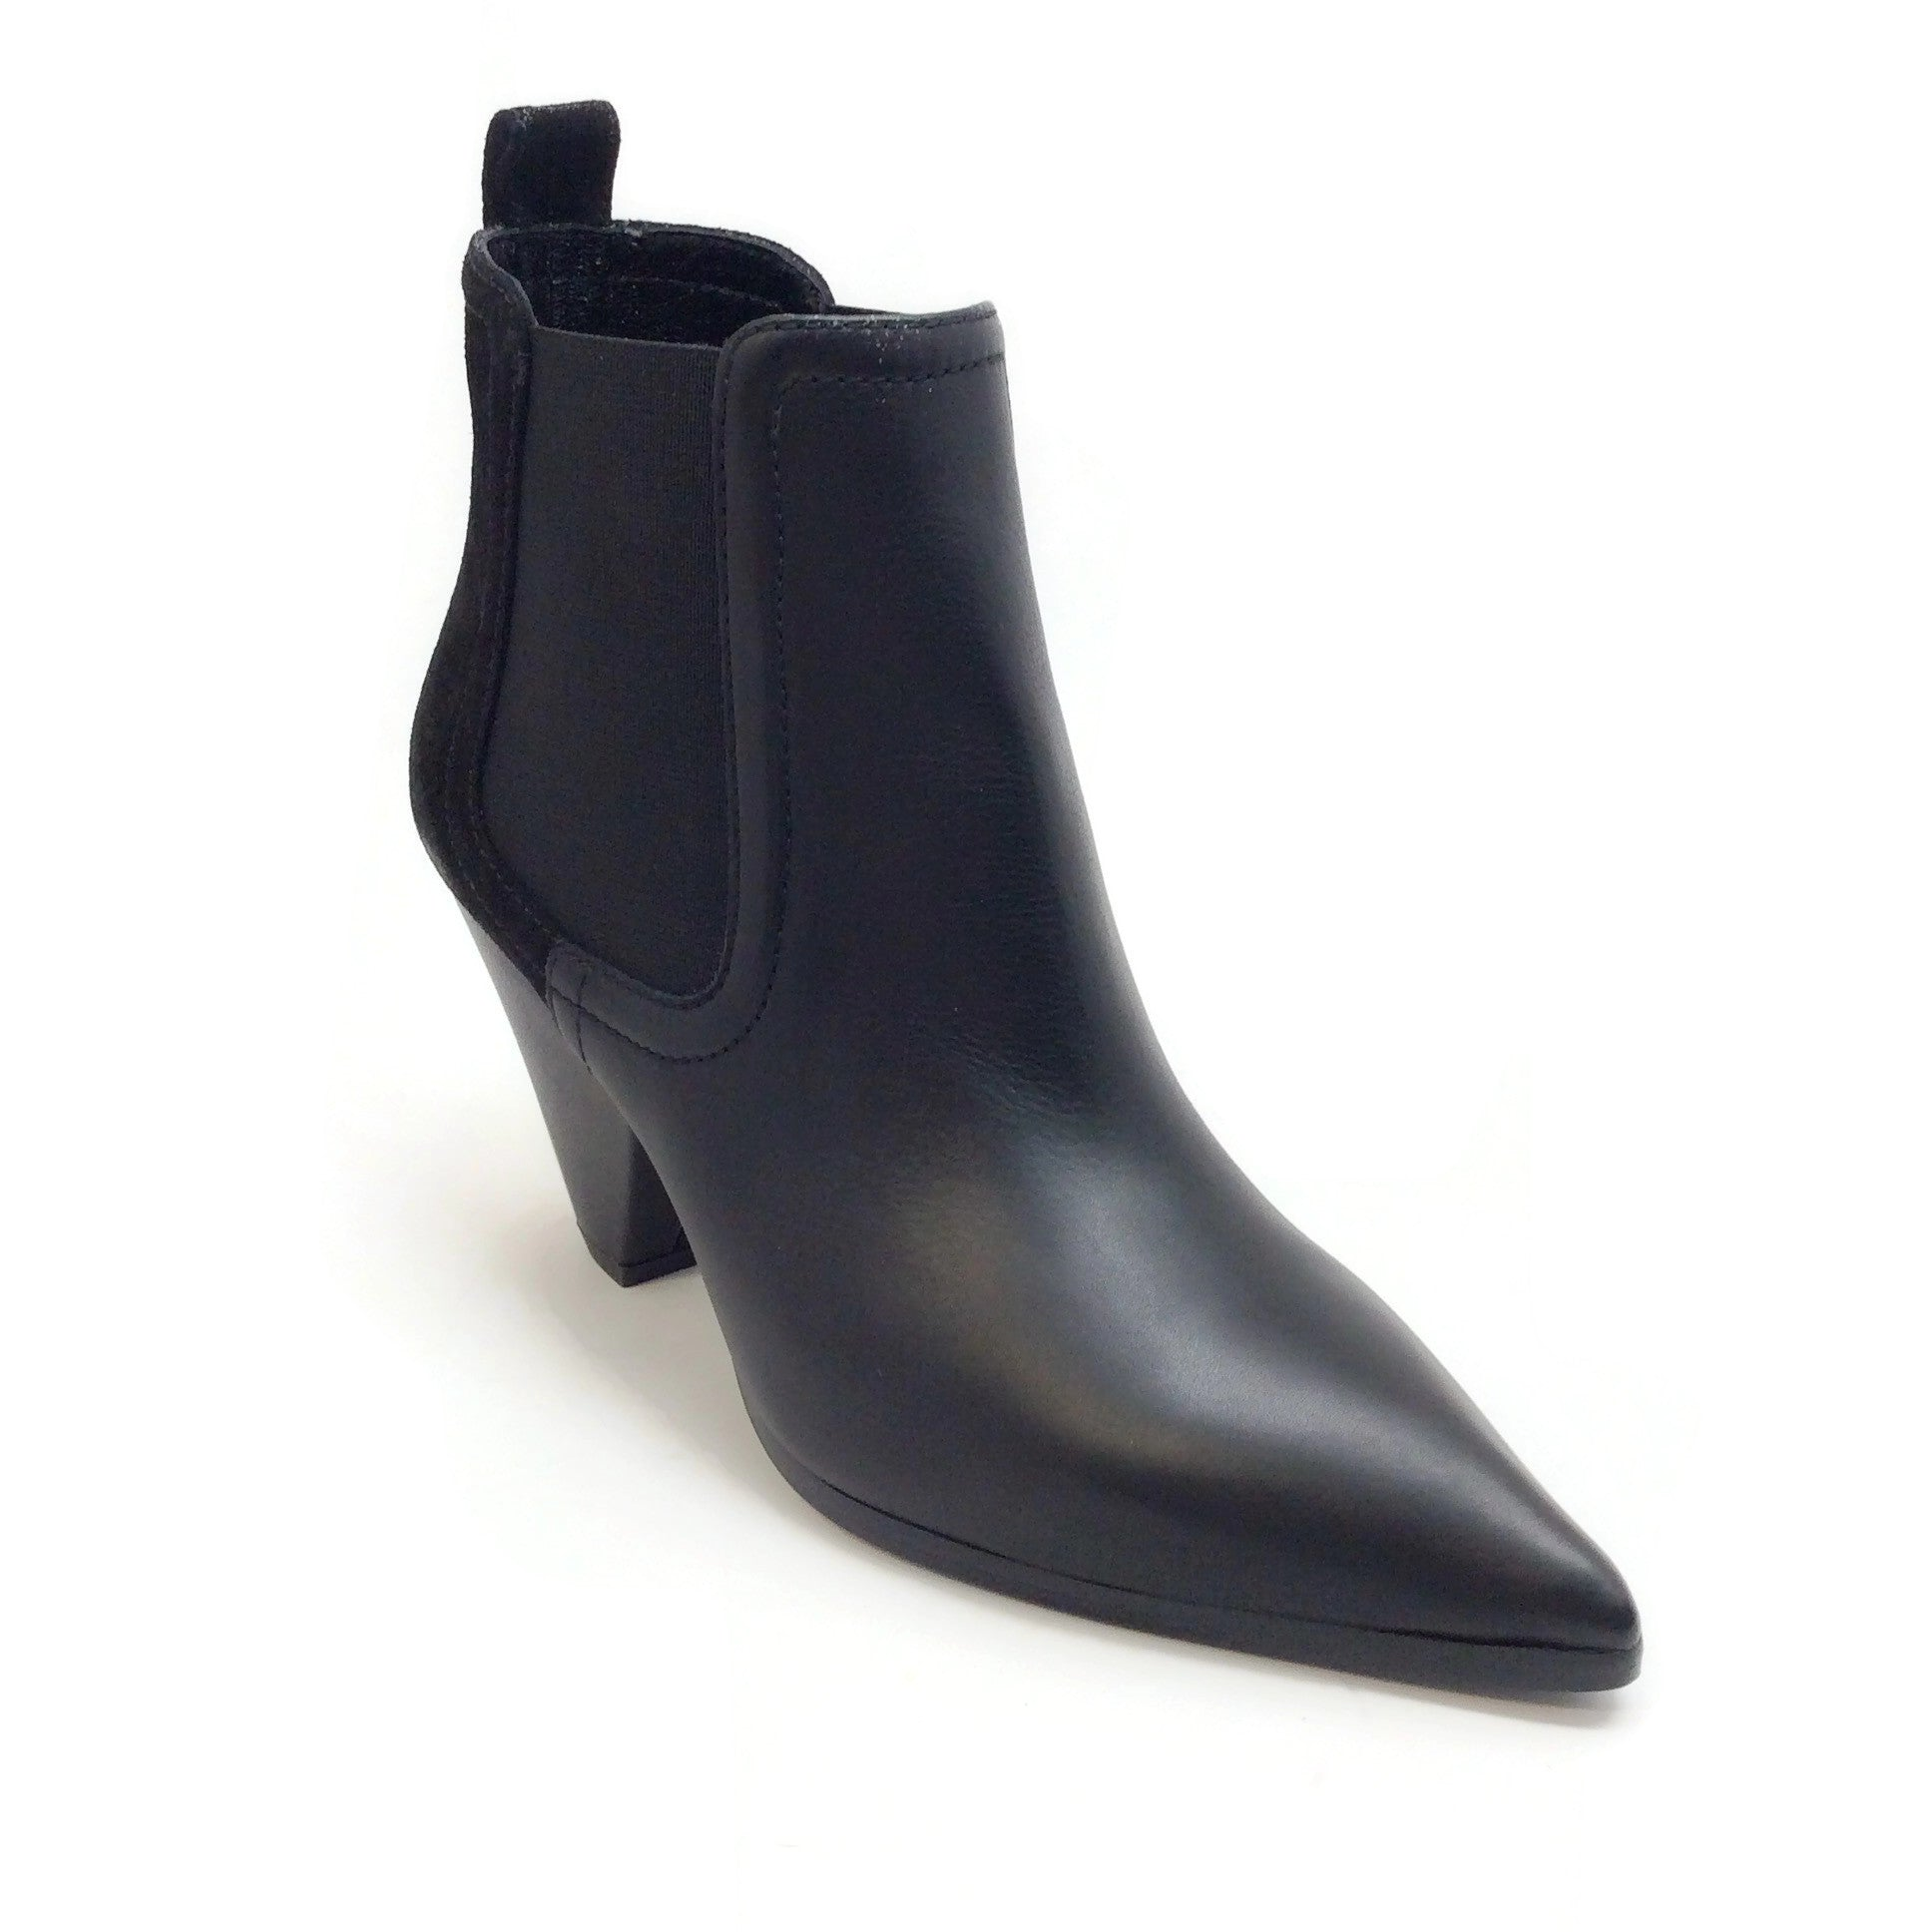 Sonia Rykiel Black Leather and Suede Ankle Boots